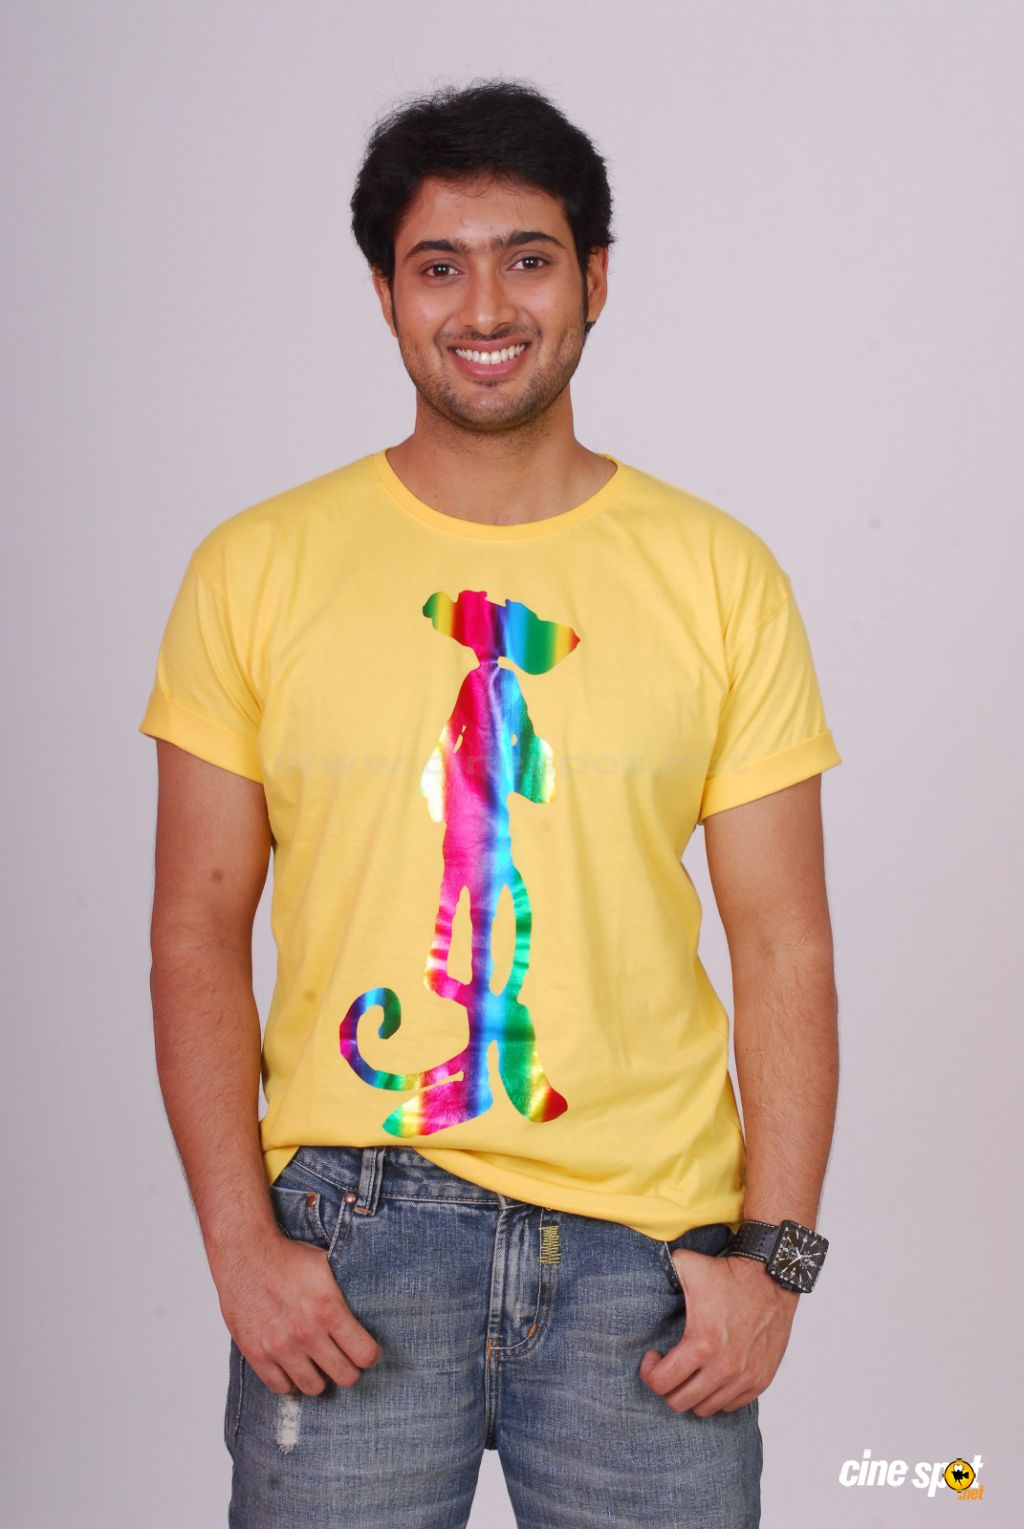 uday kiran wikiuday kiran movies, uday kiran, uday kiran death, uday kiran wiki, uday kiran songs, uday kiran wife, uday kiran photos, uday kiran video songs, uday kiran chiranjeevi story, uday kiran marriage photos, uday kiran death chiru comments, uday kiran family photos, uday kiran biography, uday kiran telugu movies list